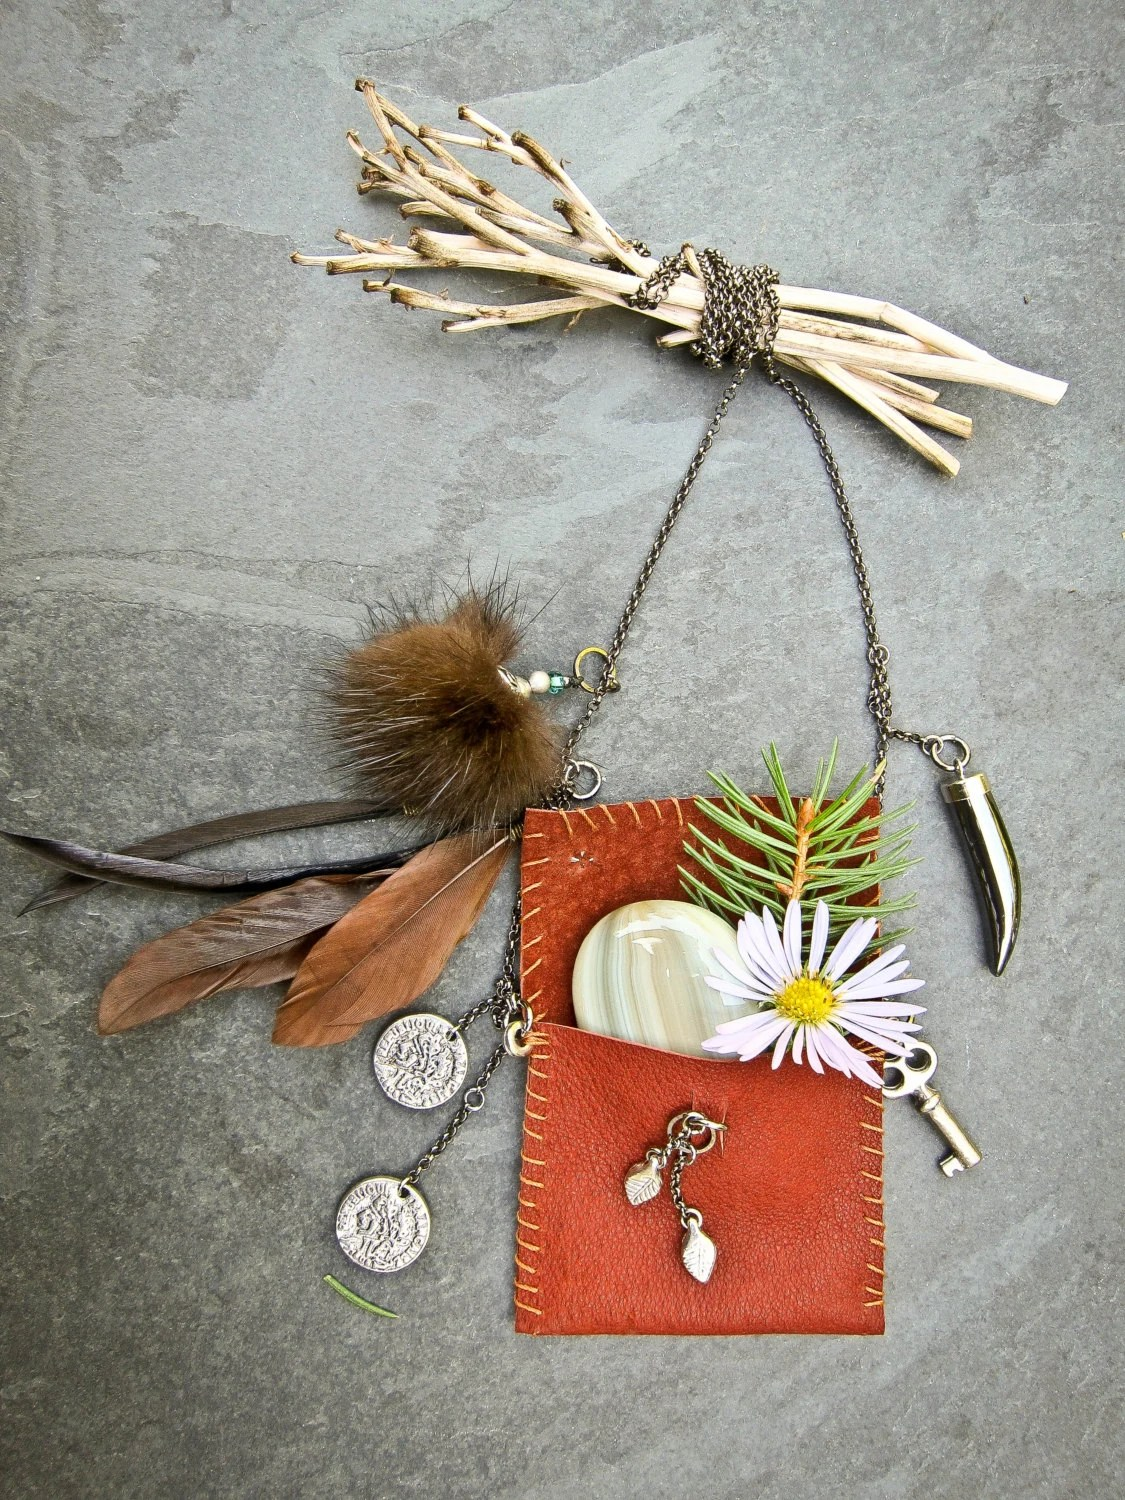 http://www.etsy.com/fr/listing/159589634/collier-chaine-pochette-de-cuir-bronze?ref=sr_gallery_24&ga_search_query=recycled+fur+bag&ga_order=most_relevant&ga_view_type=gallery&ga_ship_to=ZZ&ga_item_language=en-US&ga_search_type=all